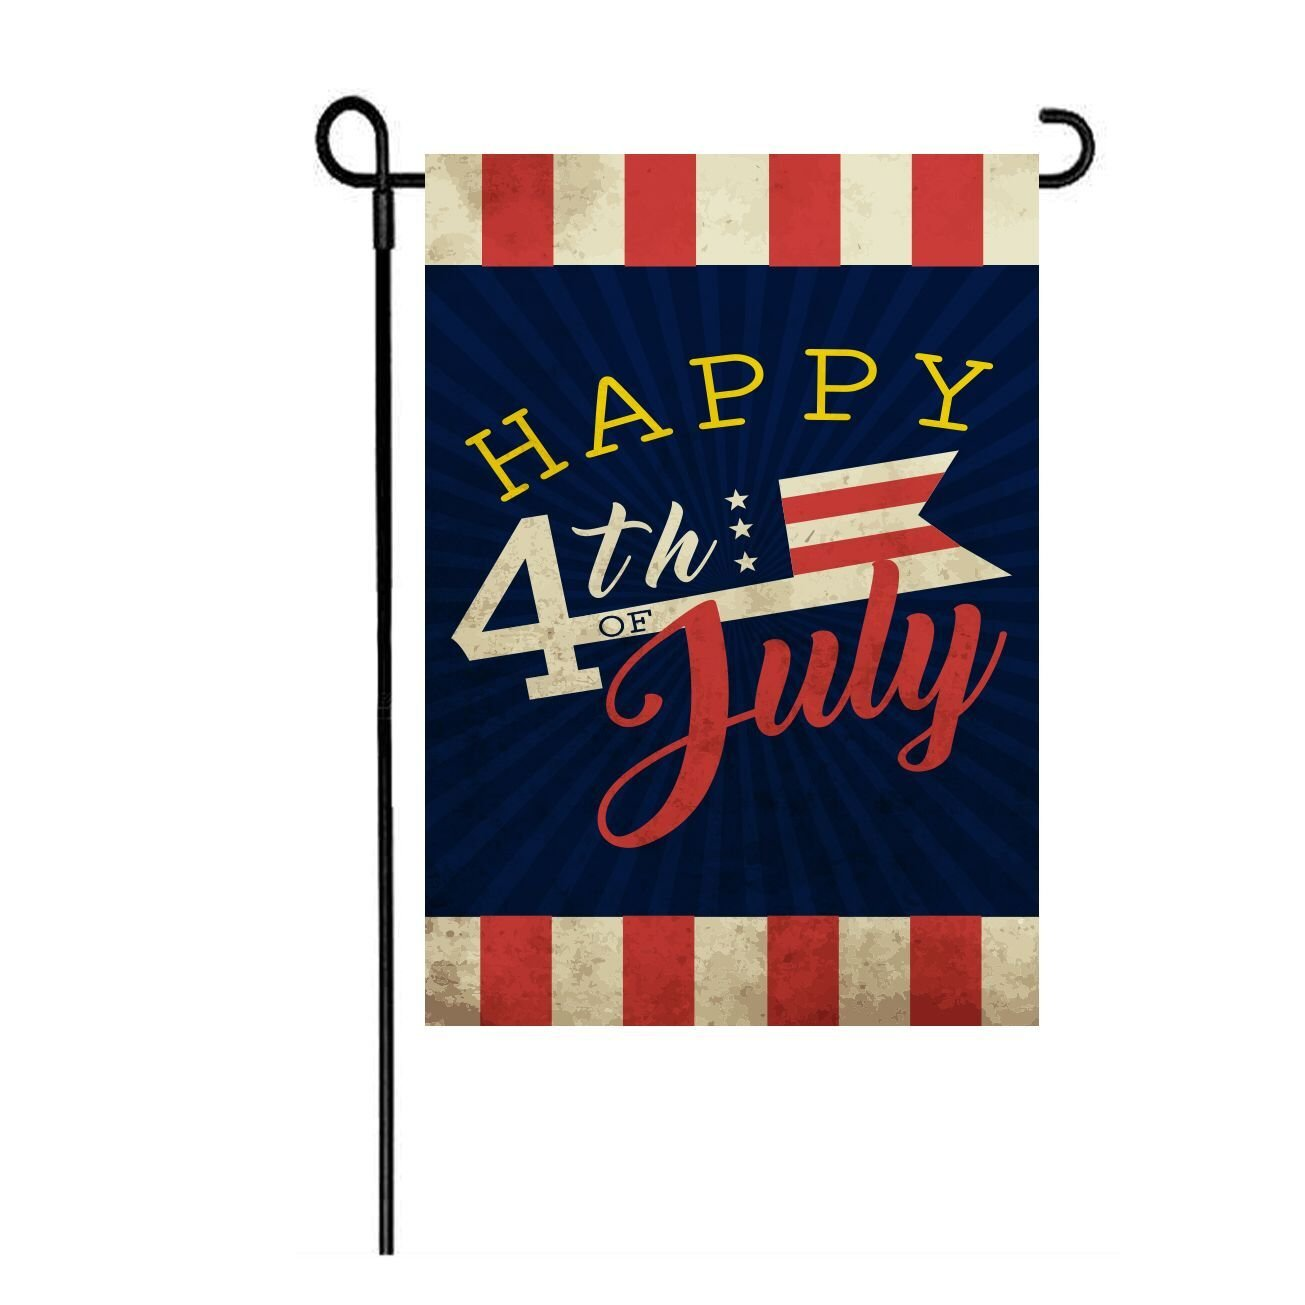 Lhsion 4th Of July Patriotic Garden Flag 12 5 X 18 Independence Day Memorial Garden Flags Decorative Double Sided Flag For Anniversary Décor